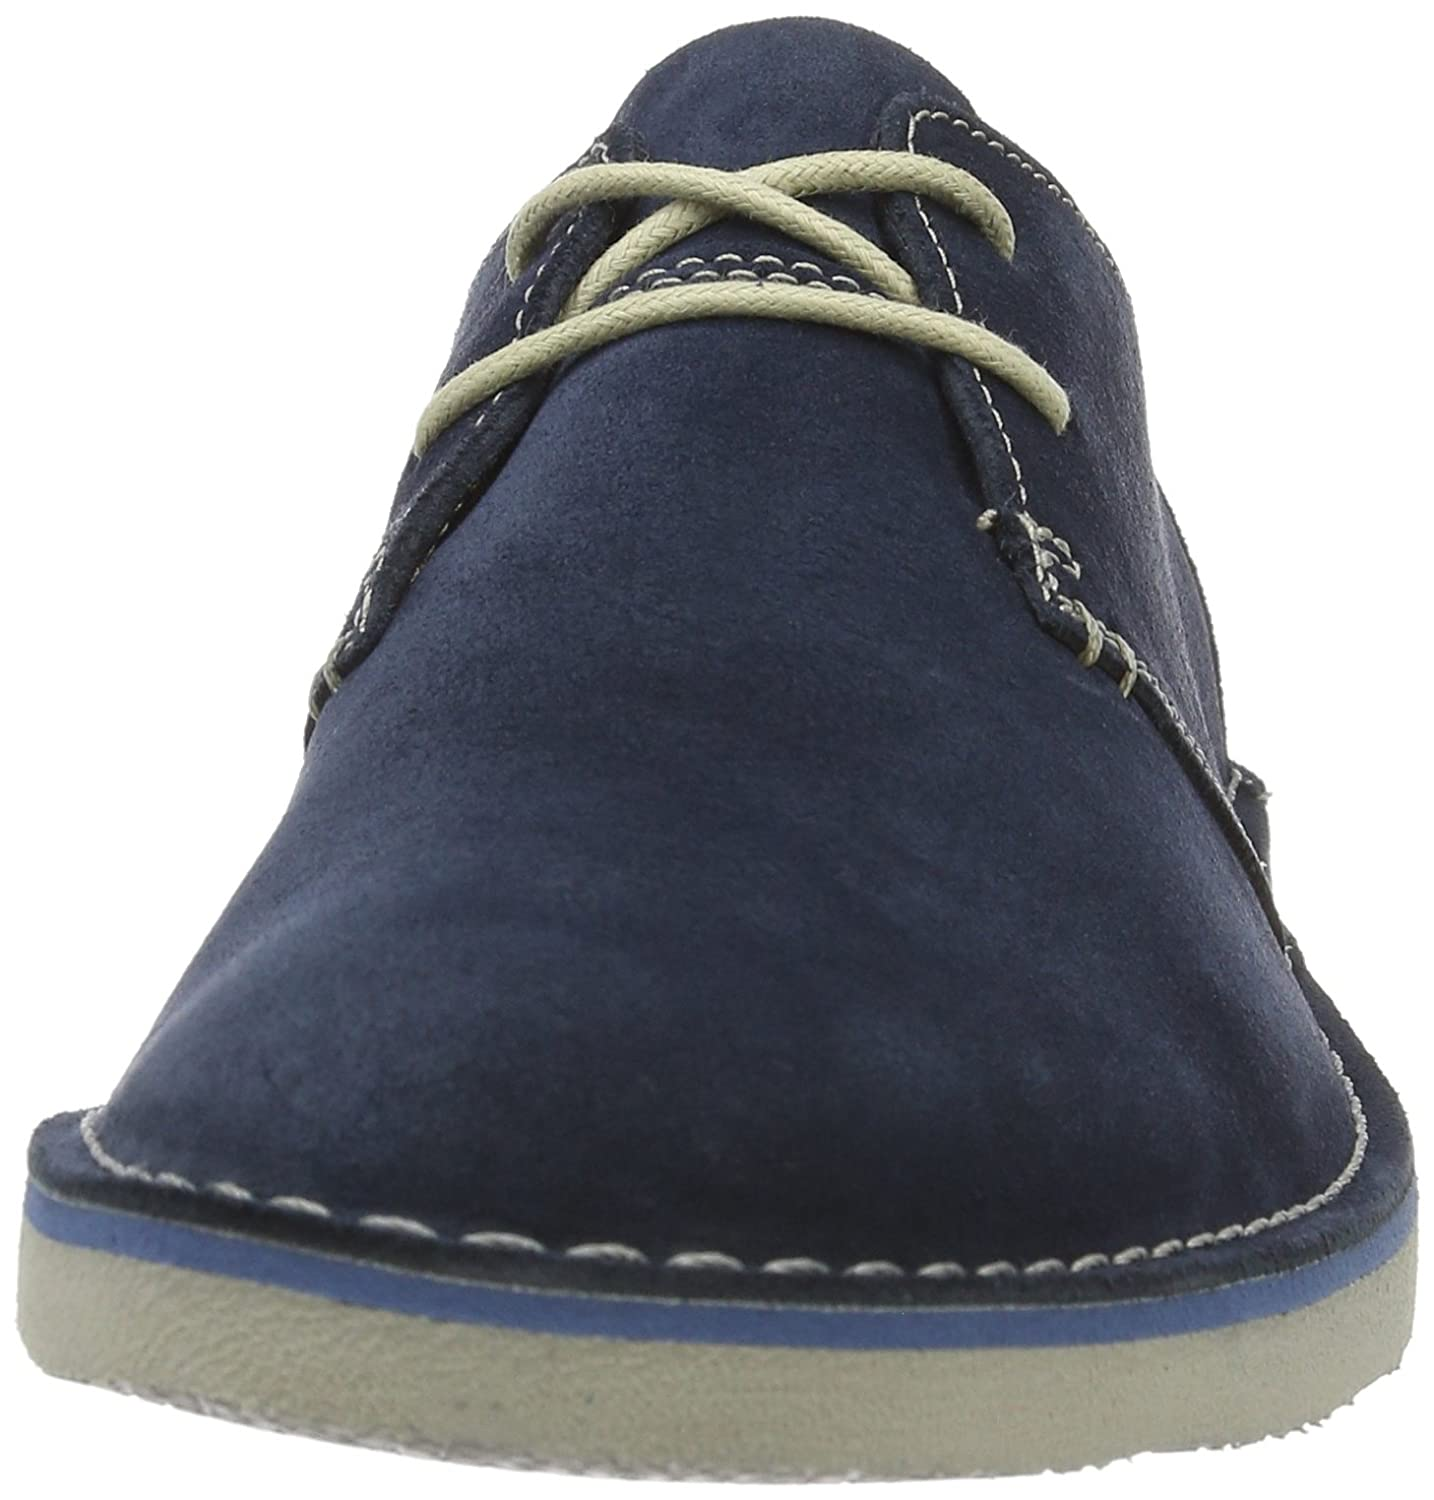 Clarks Men s Jareth Walk Lace-Up Derby Shoes Blue (Navy Suede) 8 UK  Buy  Online at Low Prices in India - Amazon.in 90eef37965f